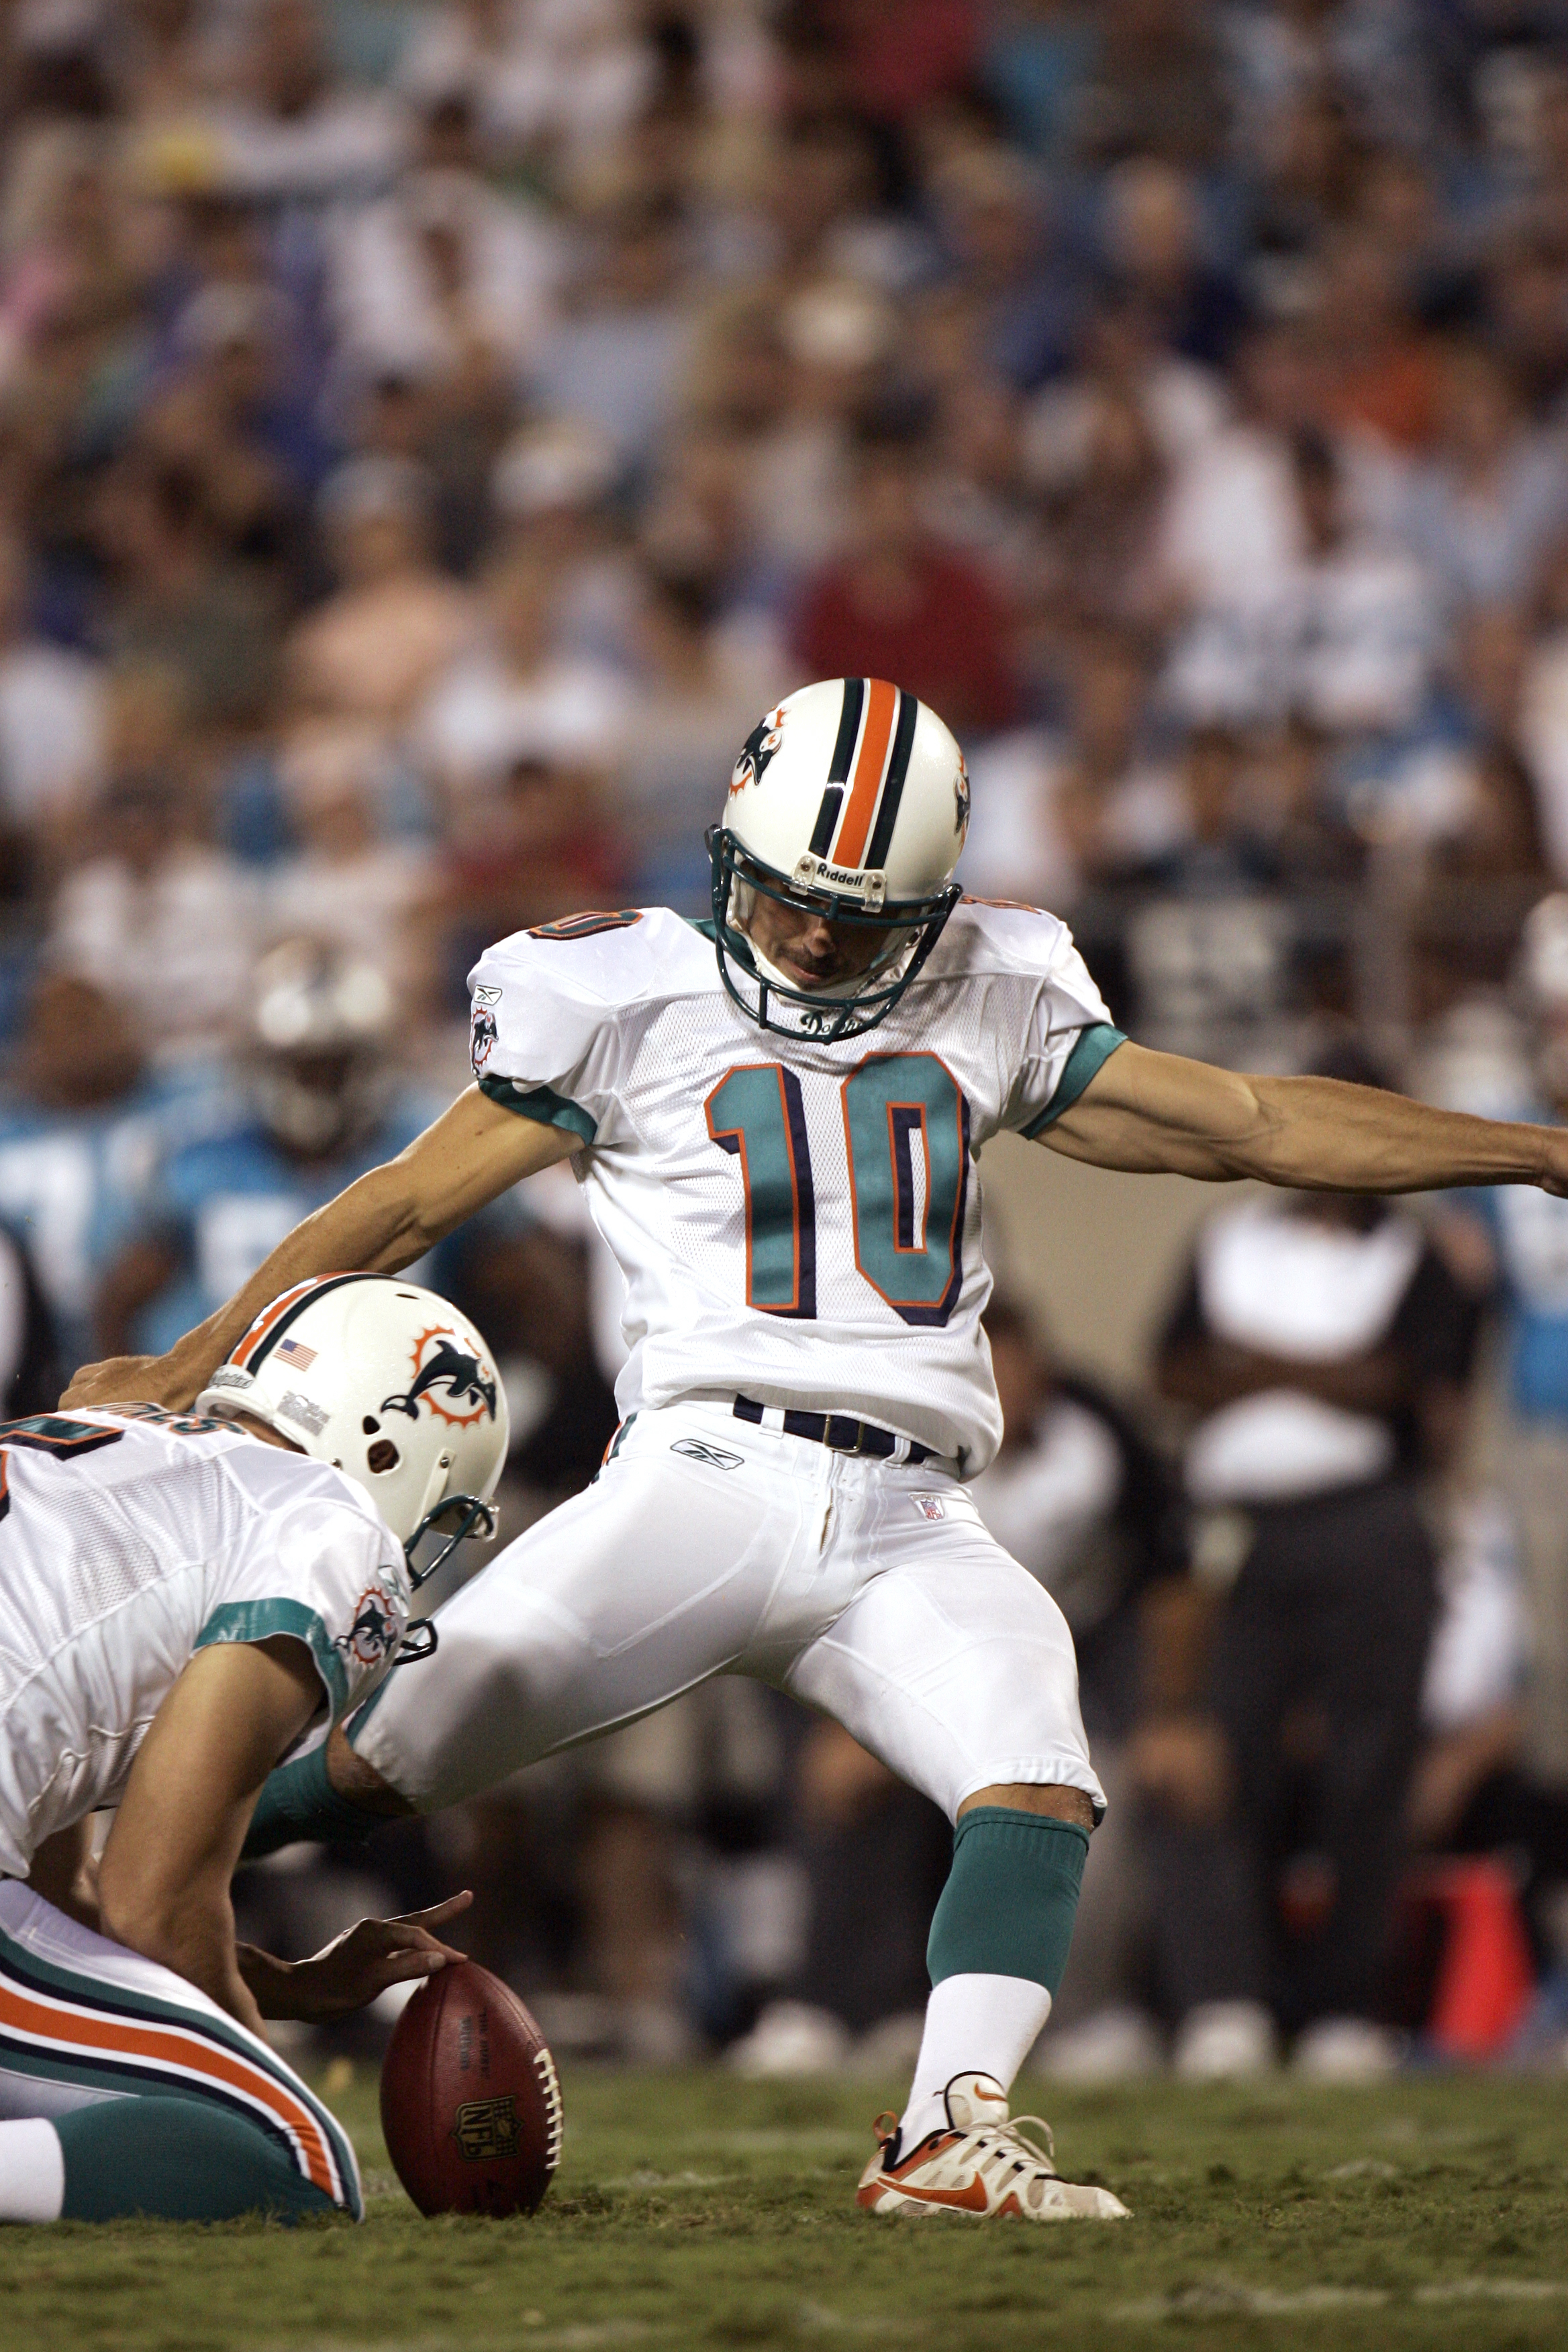 CHARLOTTE, NC - AUGUST 24:  Kicker Olindo Mare #10 of the Miami Dolphins attempts to score, as punter Donnie Jones #5 holds the ball, during the preseason game against the Carolina Panthers at Bank of America Stadium in Charlotte, North Carolina, on Augus